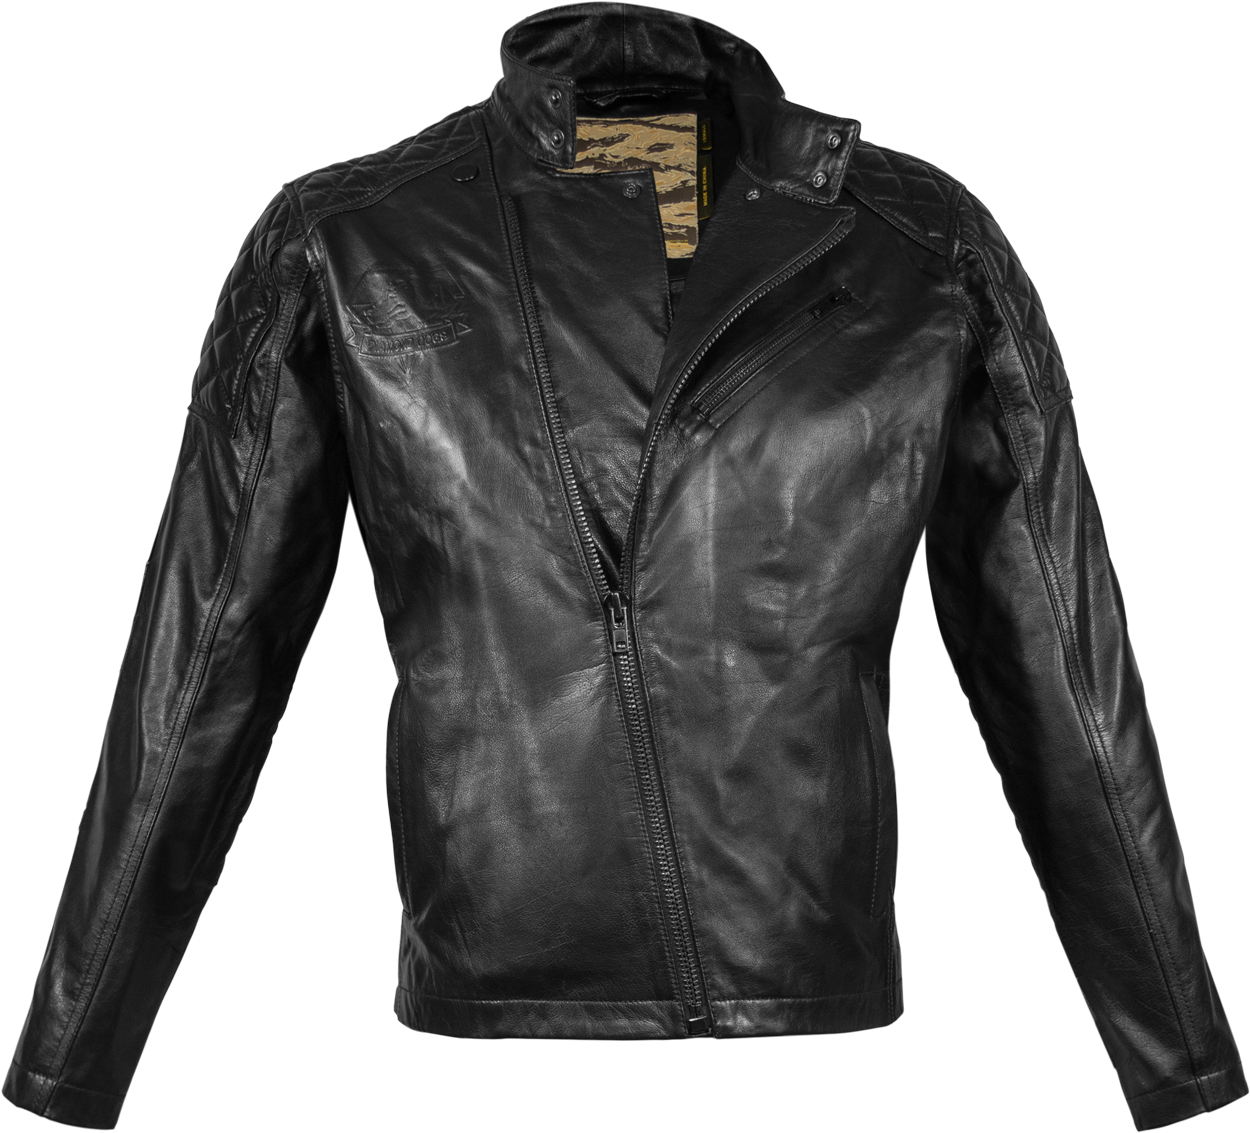 Leather jacket for dogs - Snake Leather By Musterbrand Like A Boss Big Boss